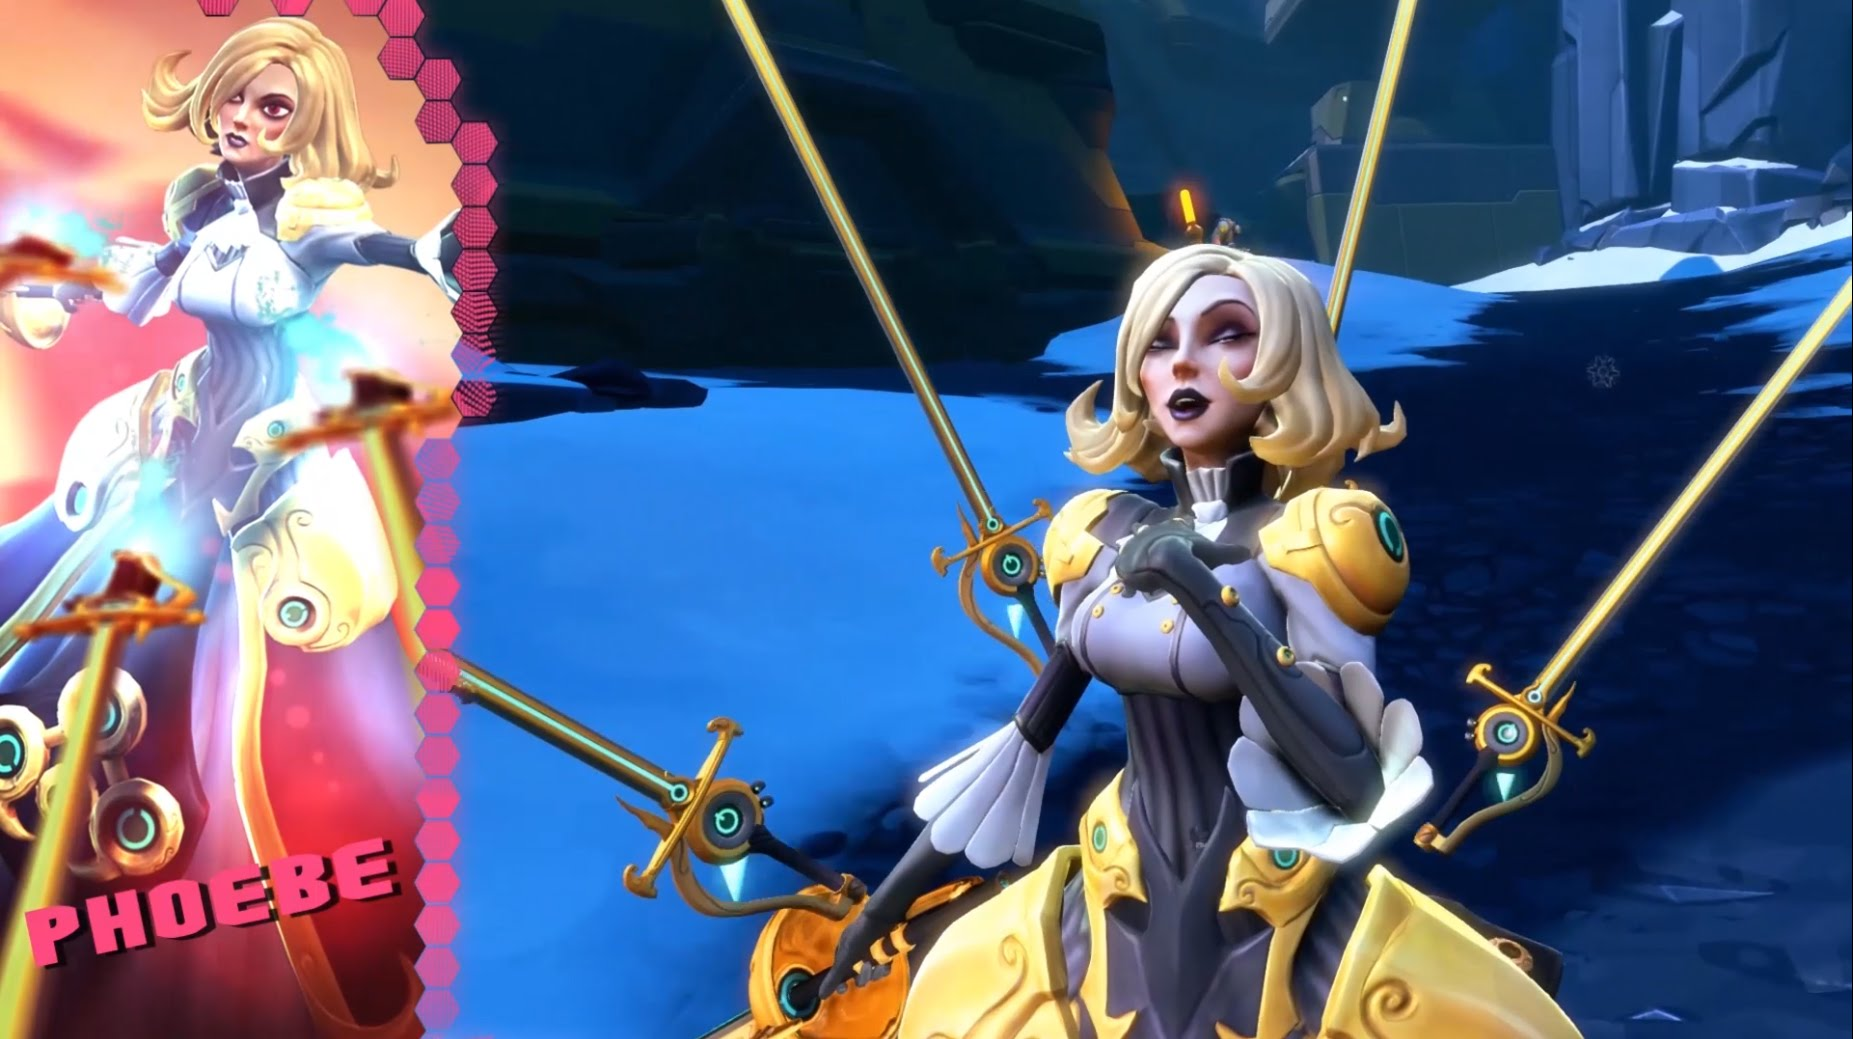 Battleborn: Phoebe Gameplay Video thumb